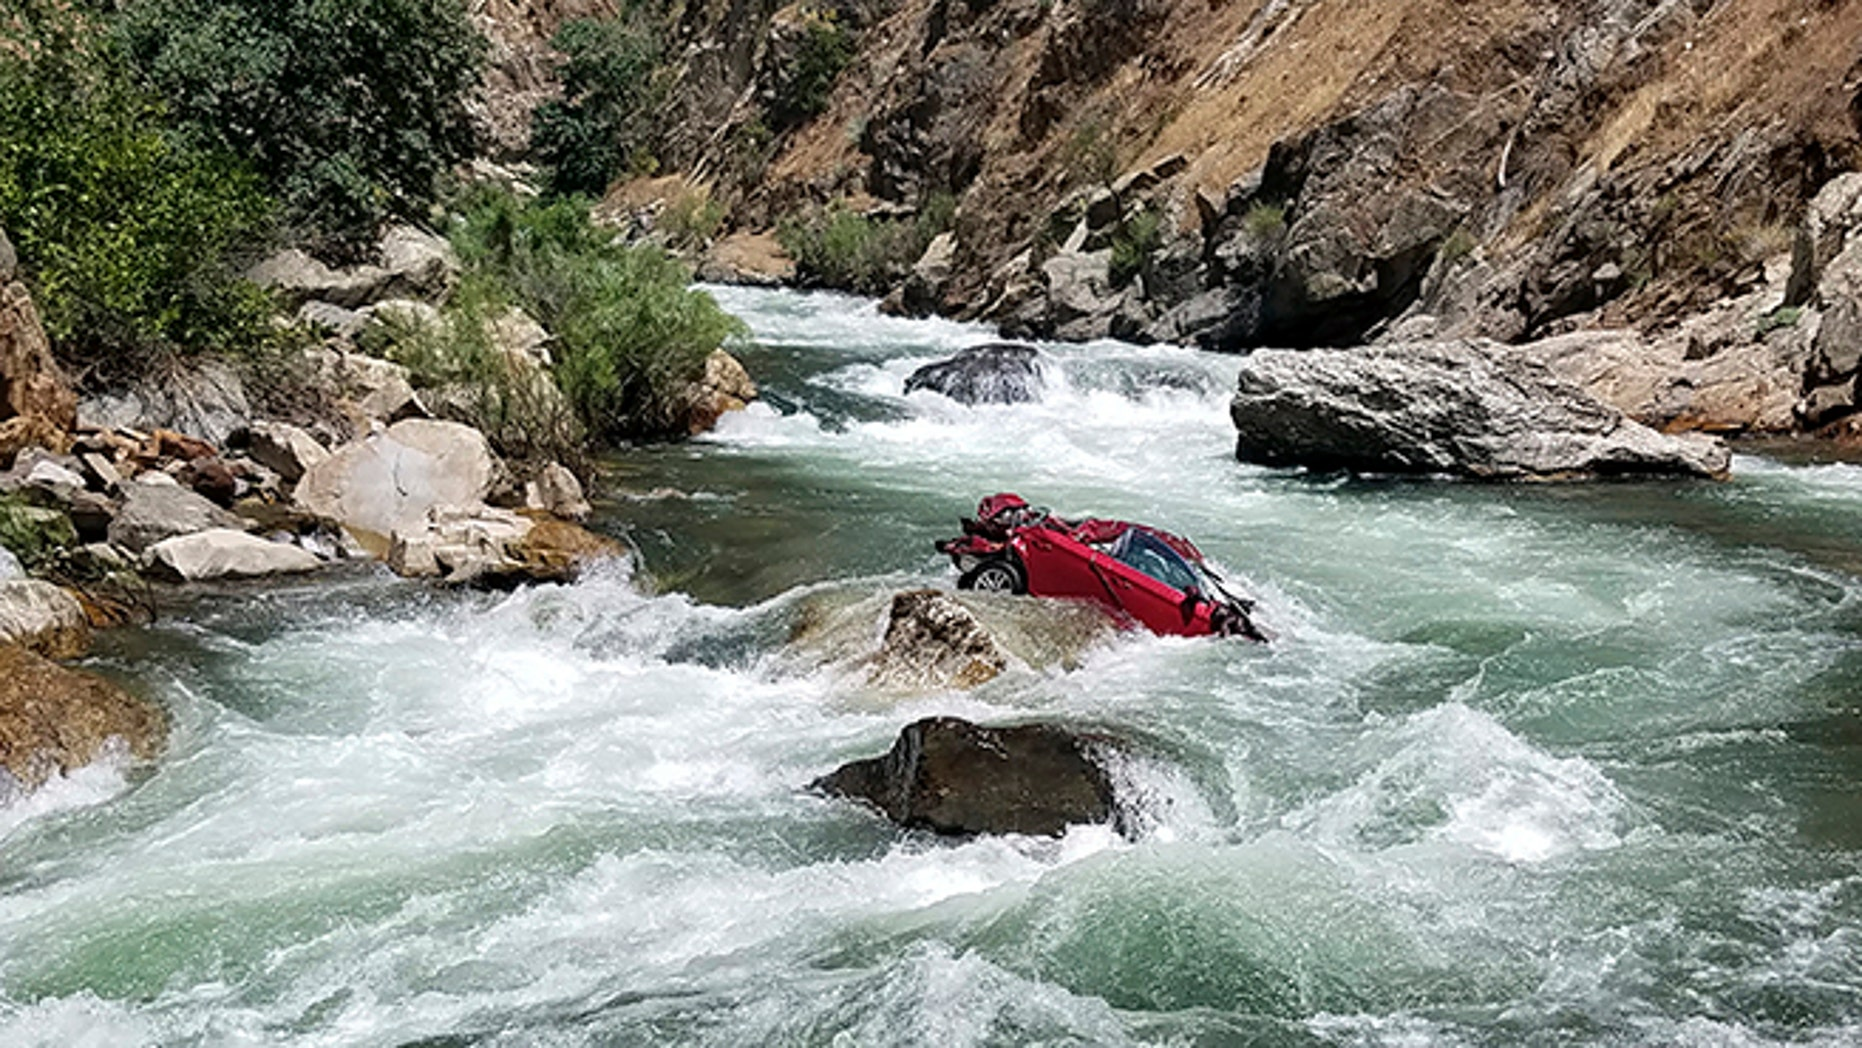 Authorities have recovered the bodies of two Thai exchange students who died after their car plunged off a cliff more than a month ago in Central California and became lodged in a dangerous river.